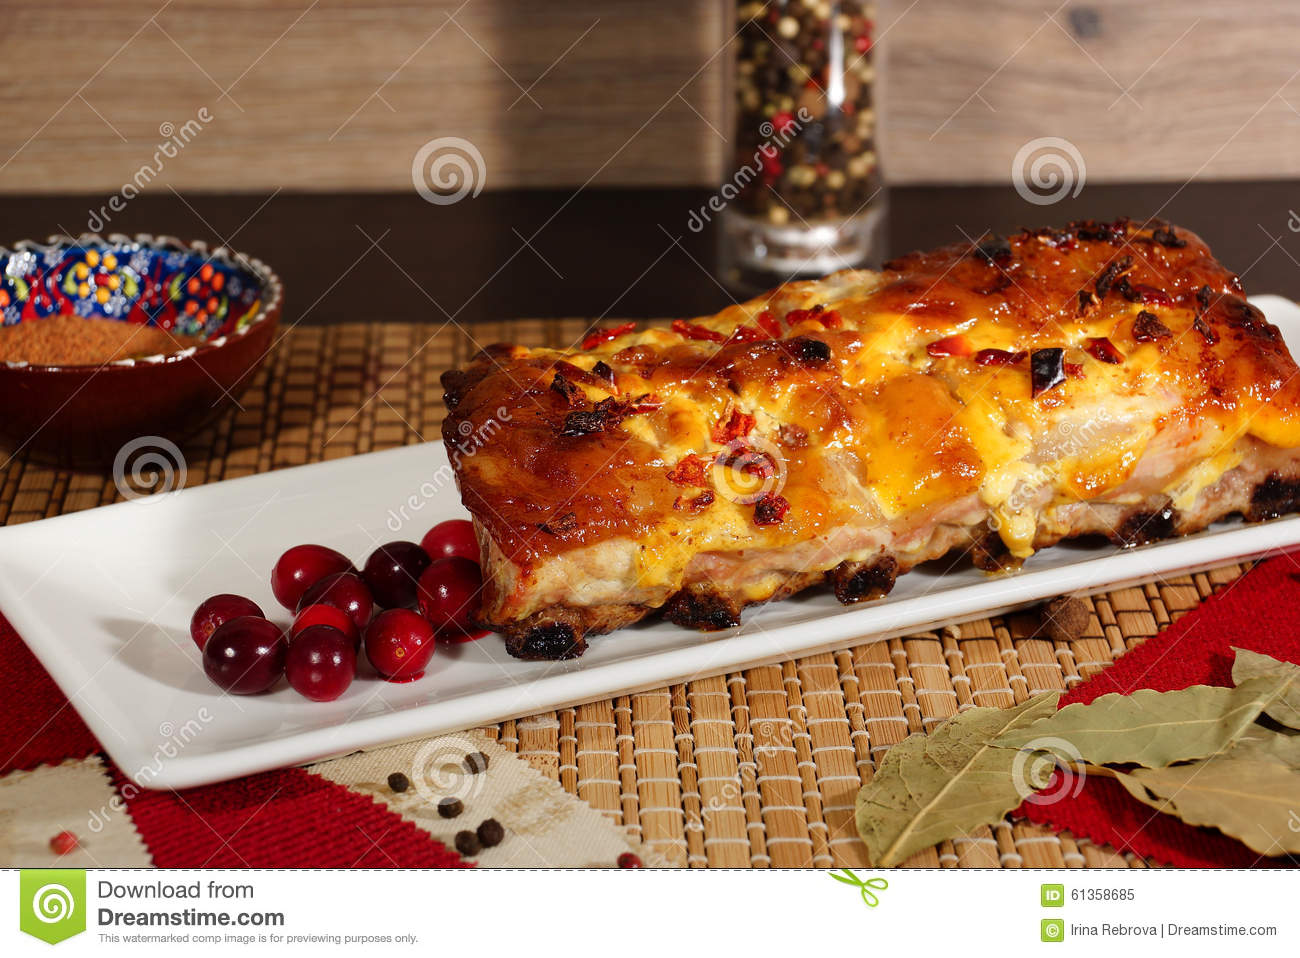 Pork ribs, baked with mustard sauce with cranberries